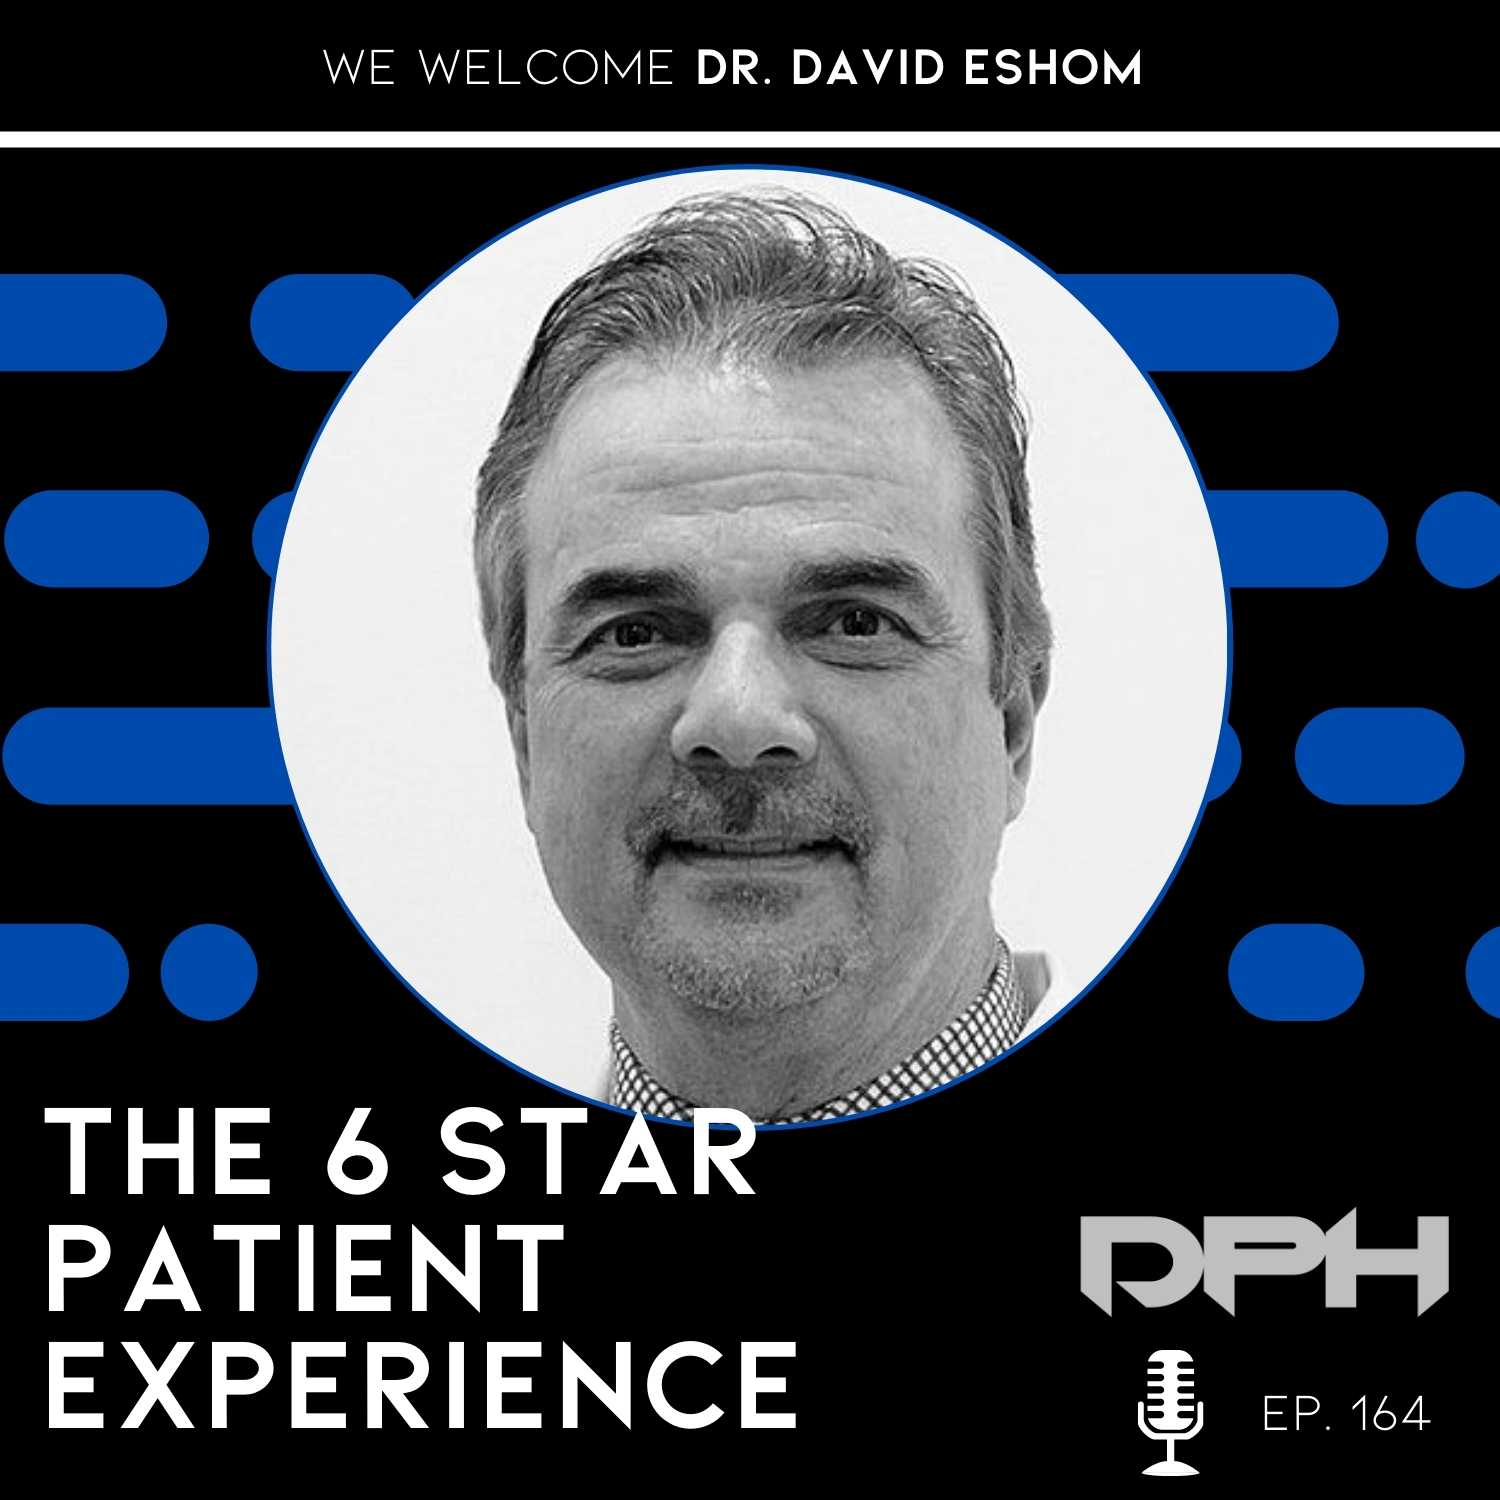 The SIX STAR Patient Experience with David Eshom